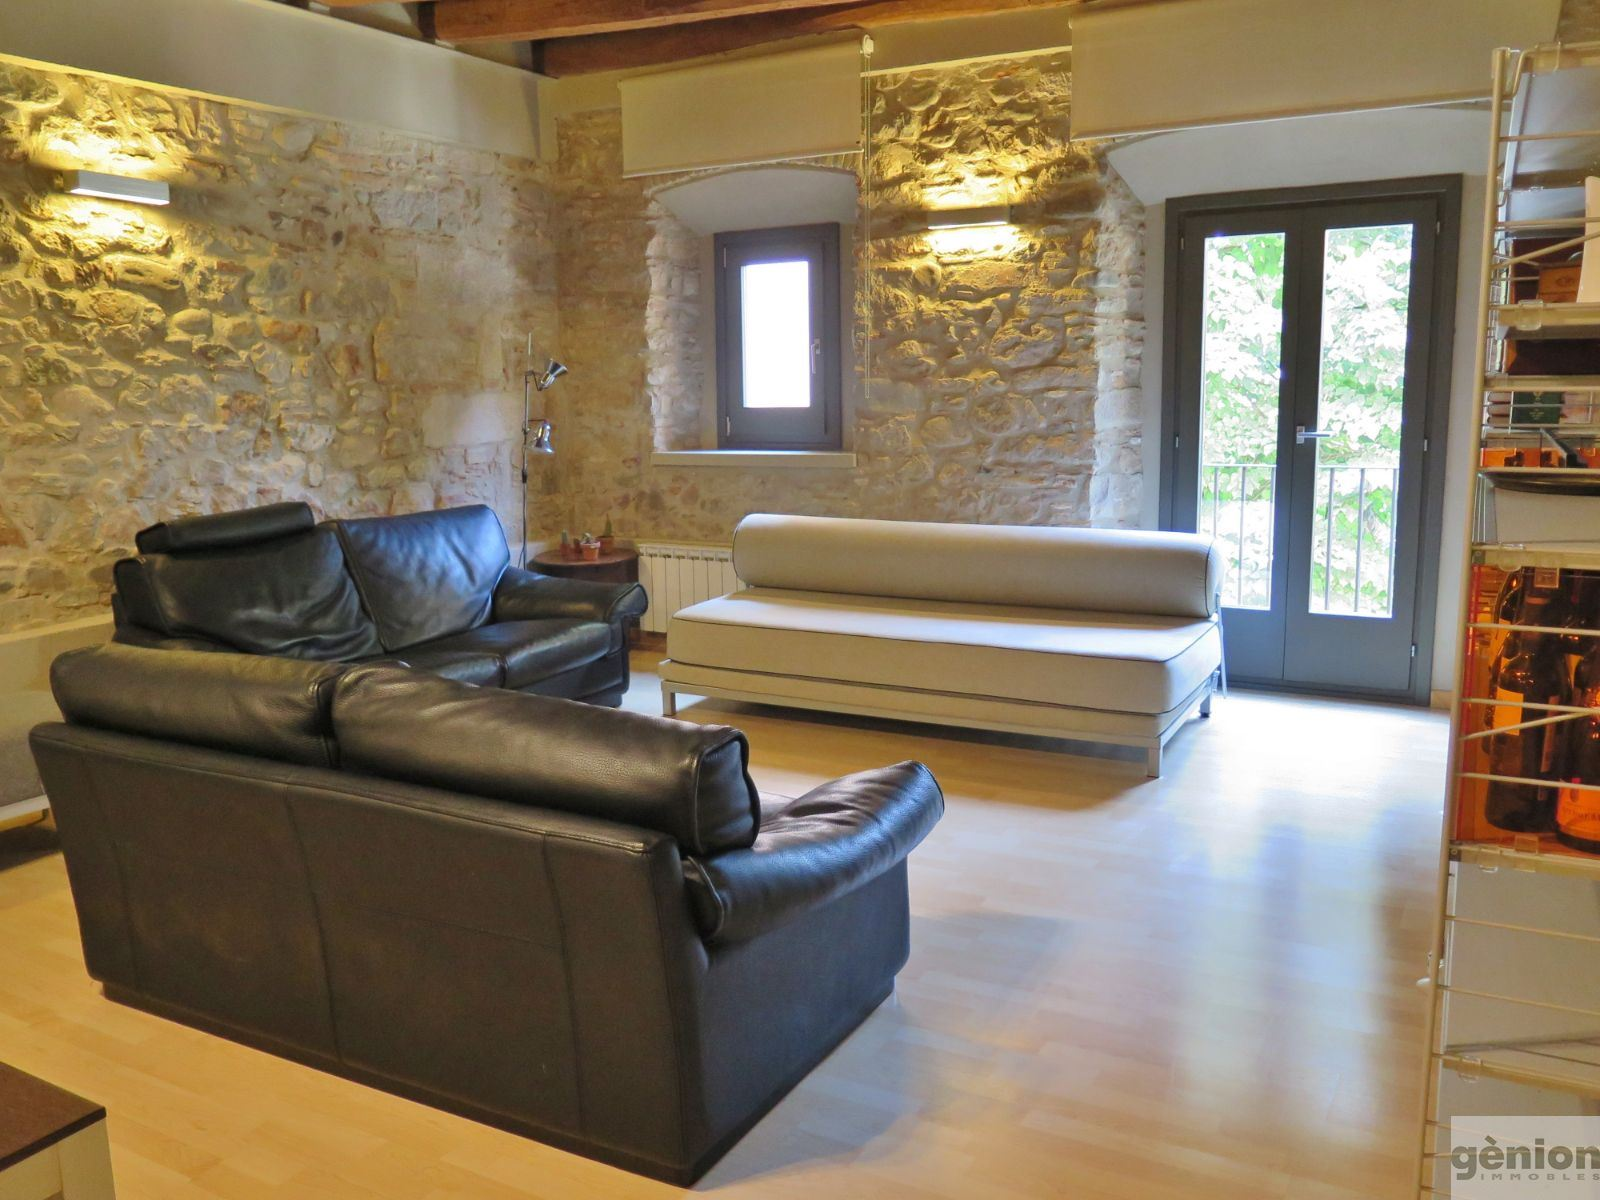 120 M² APARTMENT IN THE HEART OF GIRONA'S BARRI VELL (OLD QUARTER). FULLY REFURBISHED HISTORIC BUILDING